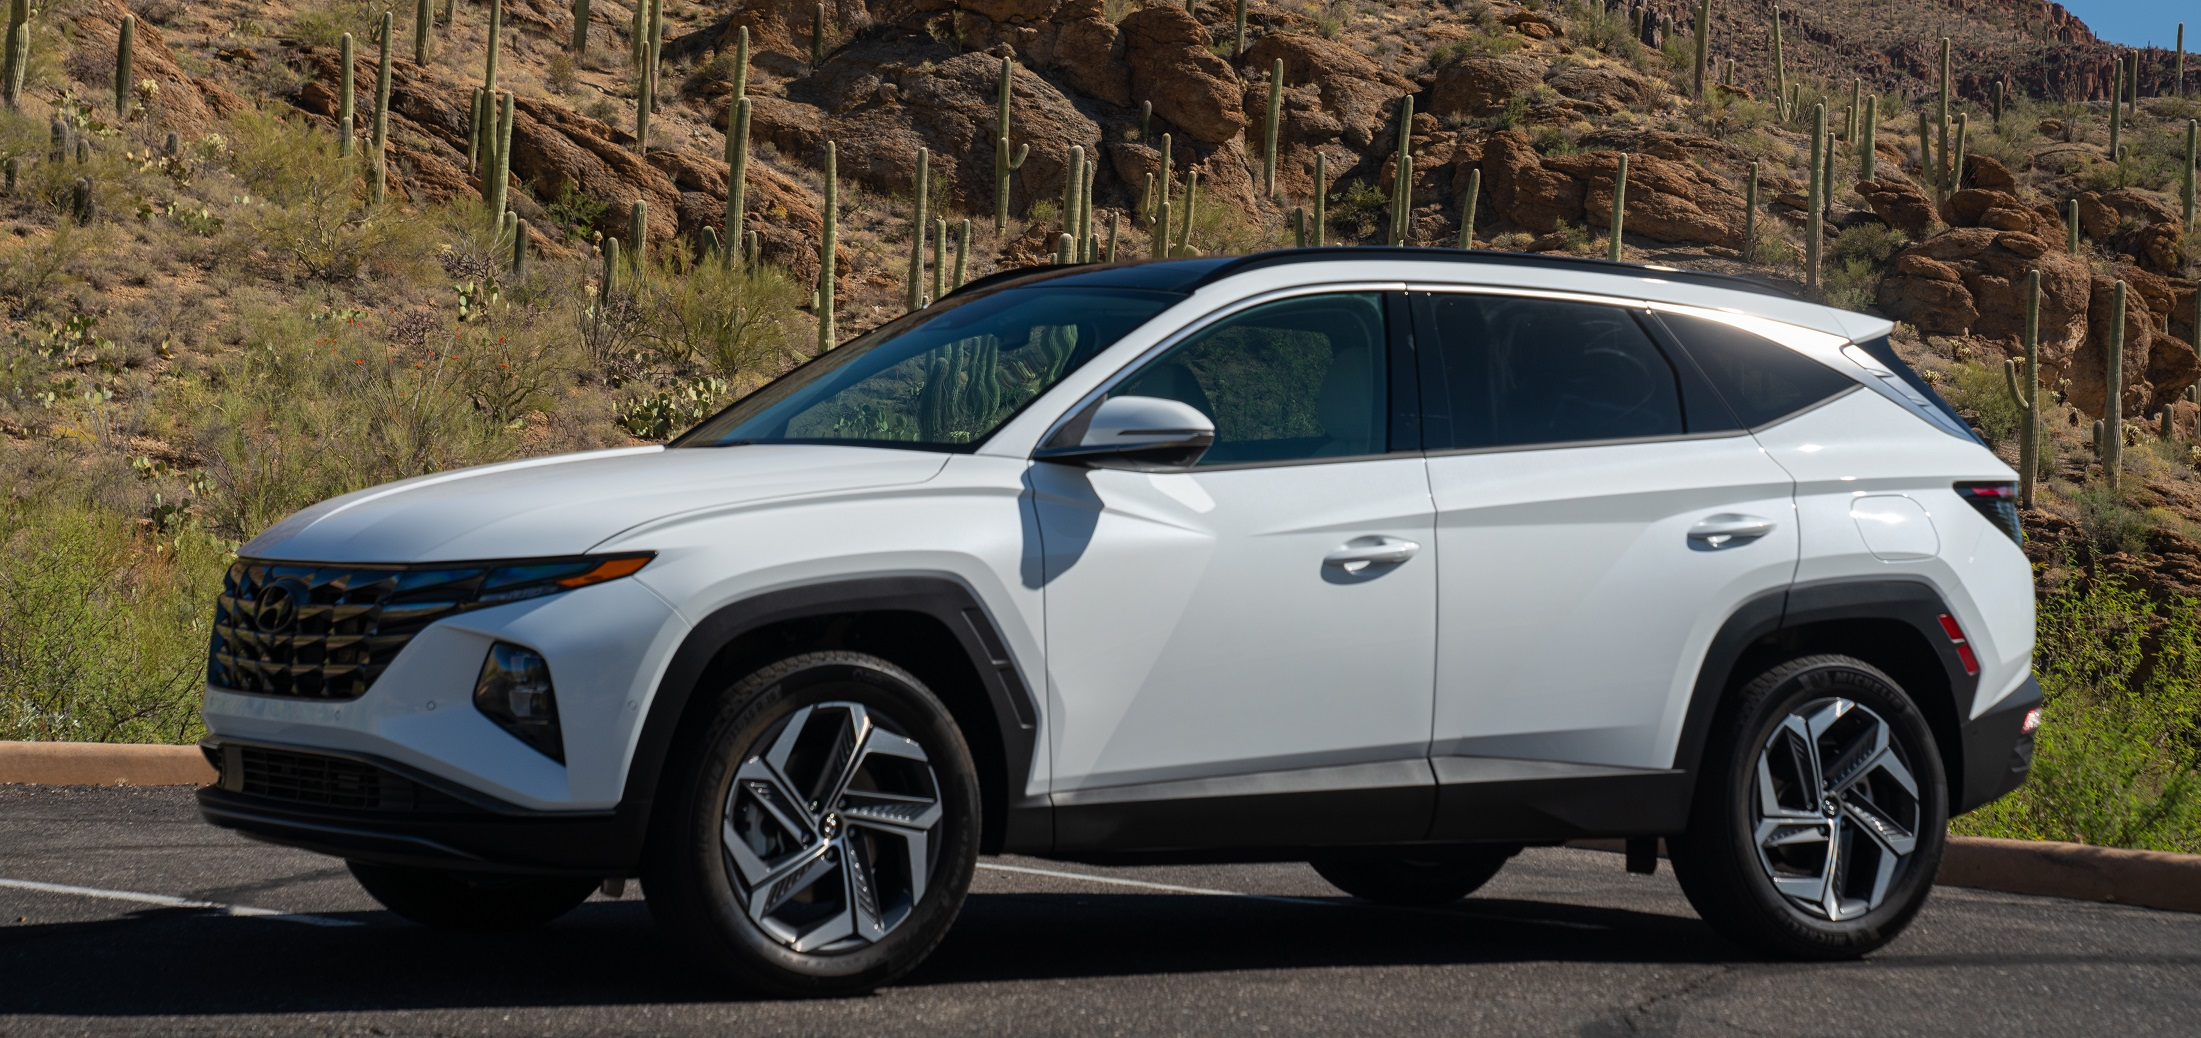 An exterior view of the redesigned Hyundai Tucson SV